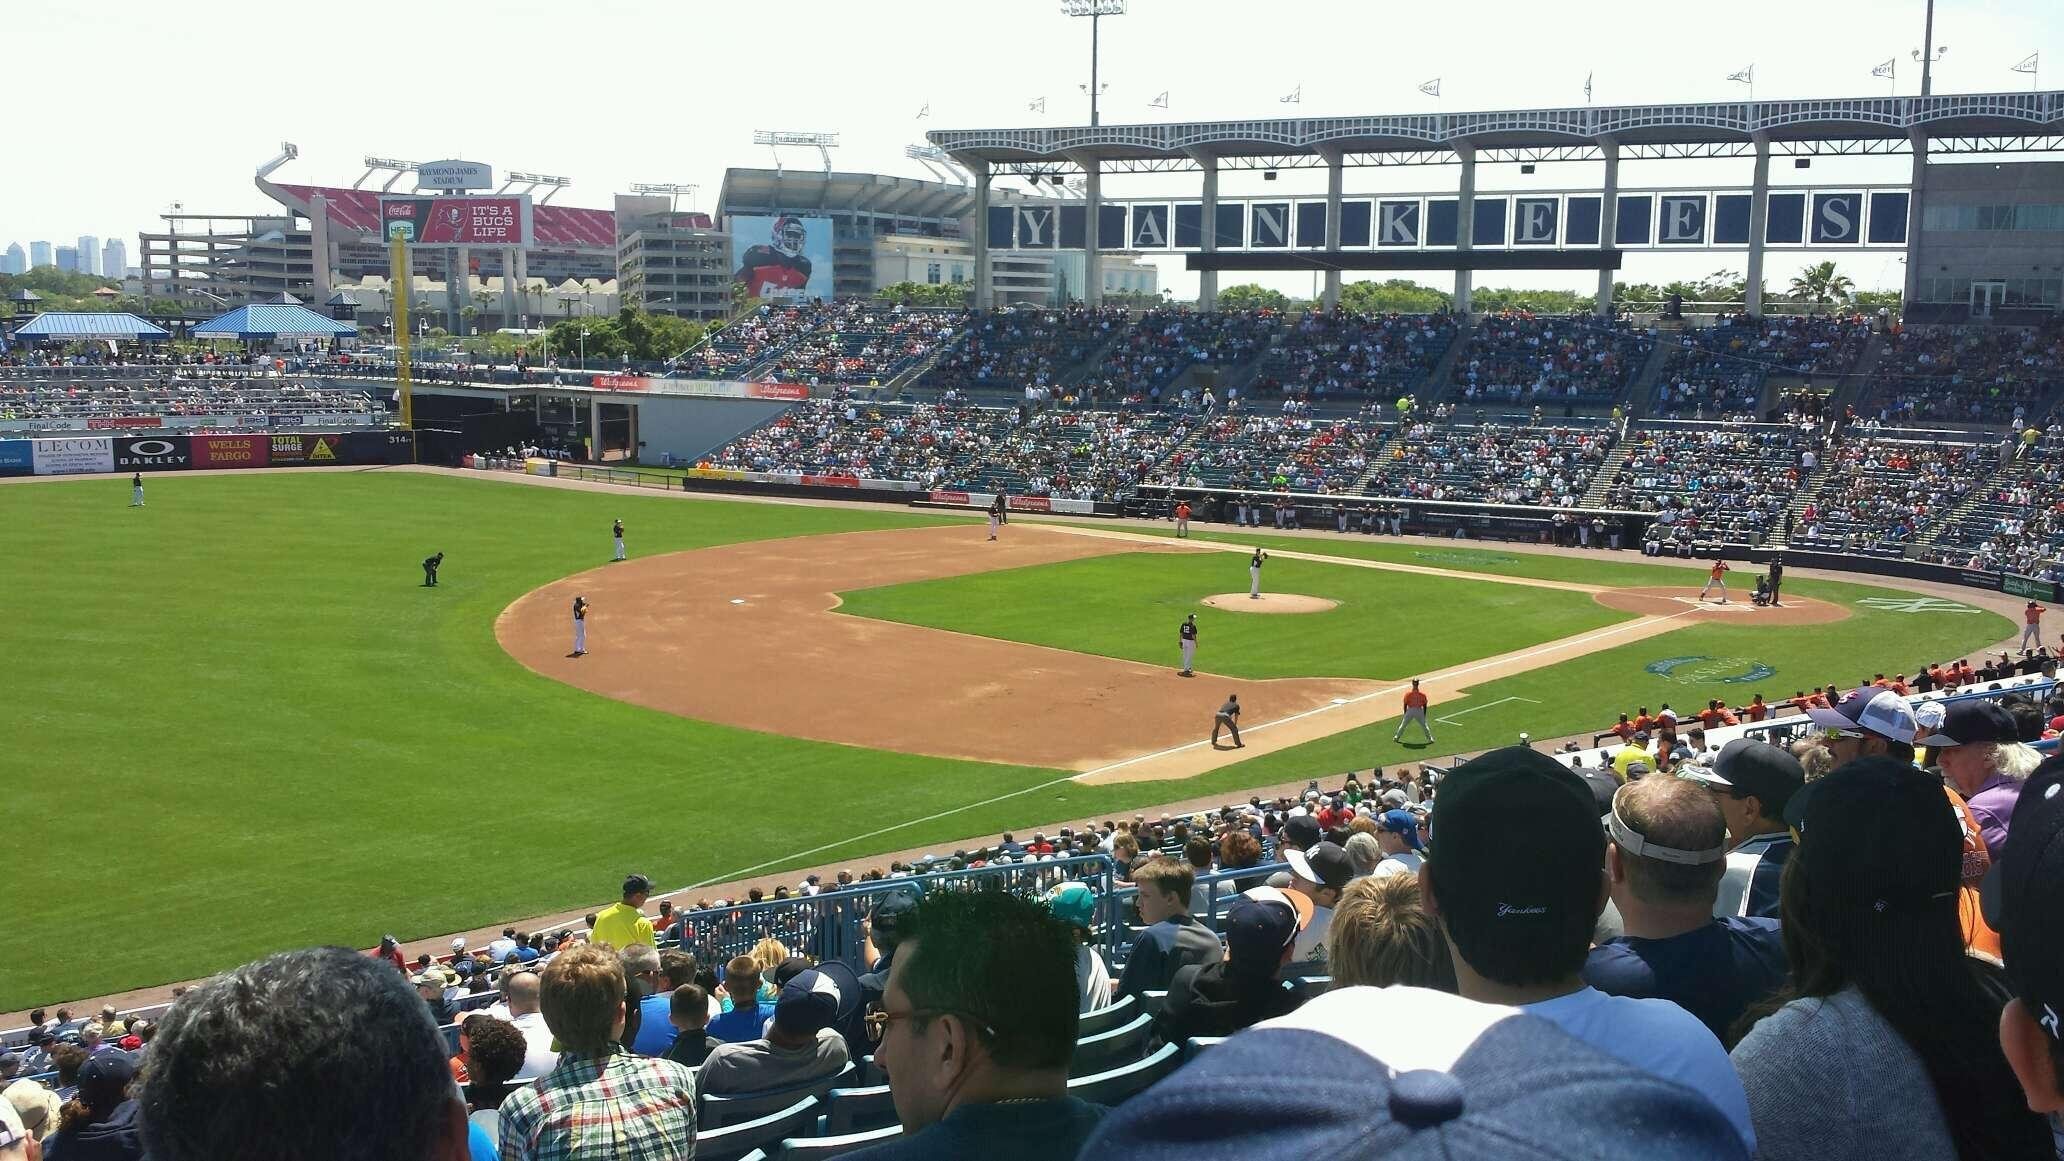 George steinbrenner field pictures